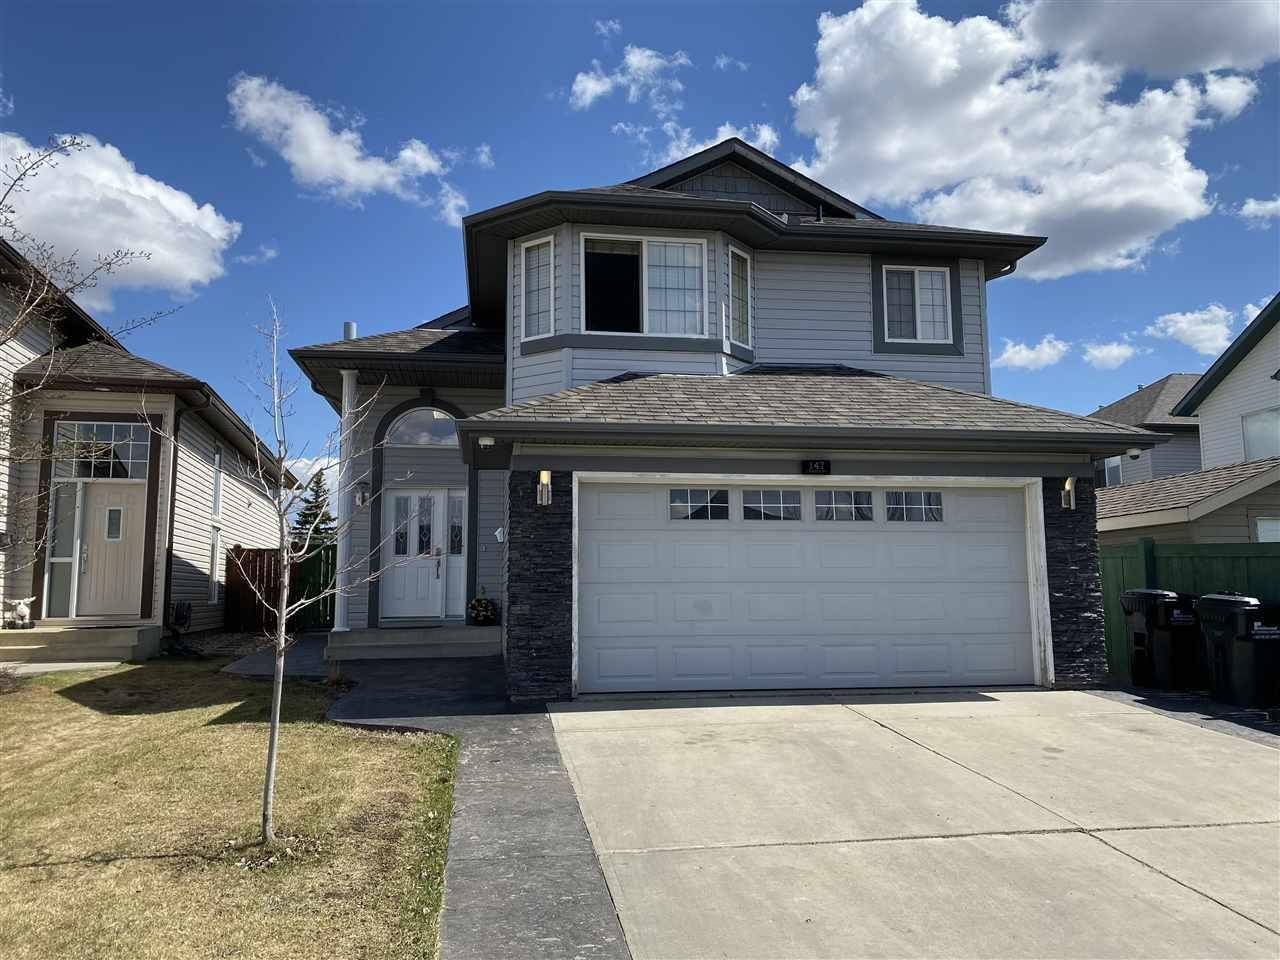 House for sale at 147 Chatwin Rd Sherwood Park Alberta - MLS: E4182901